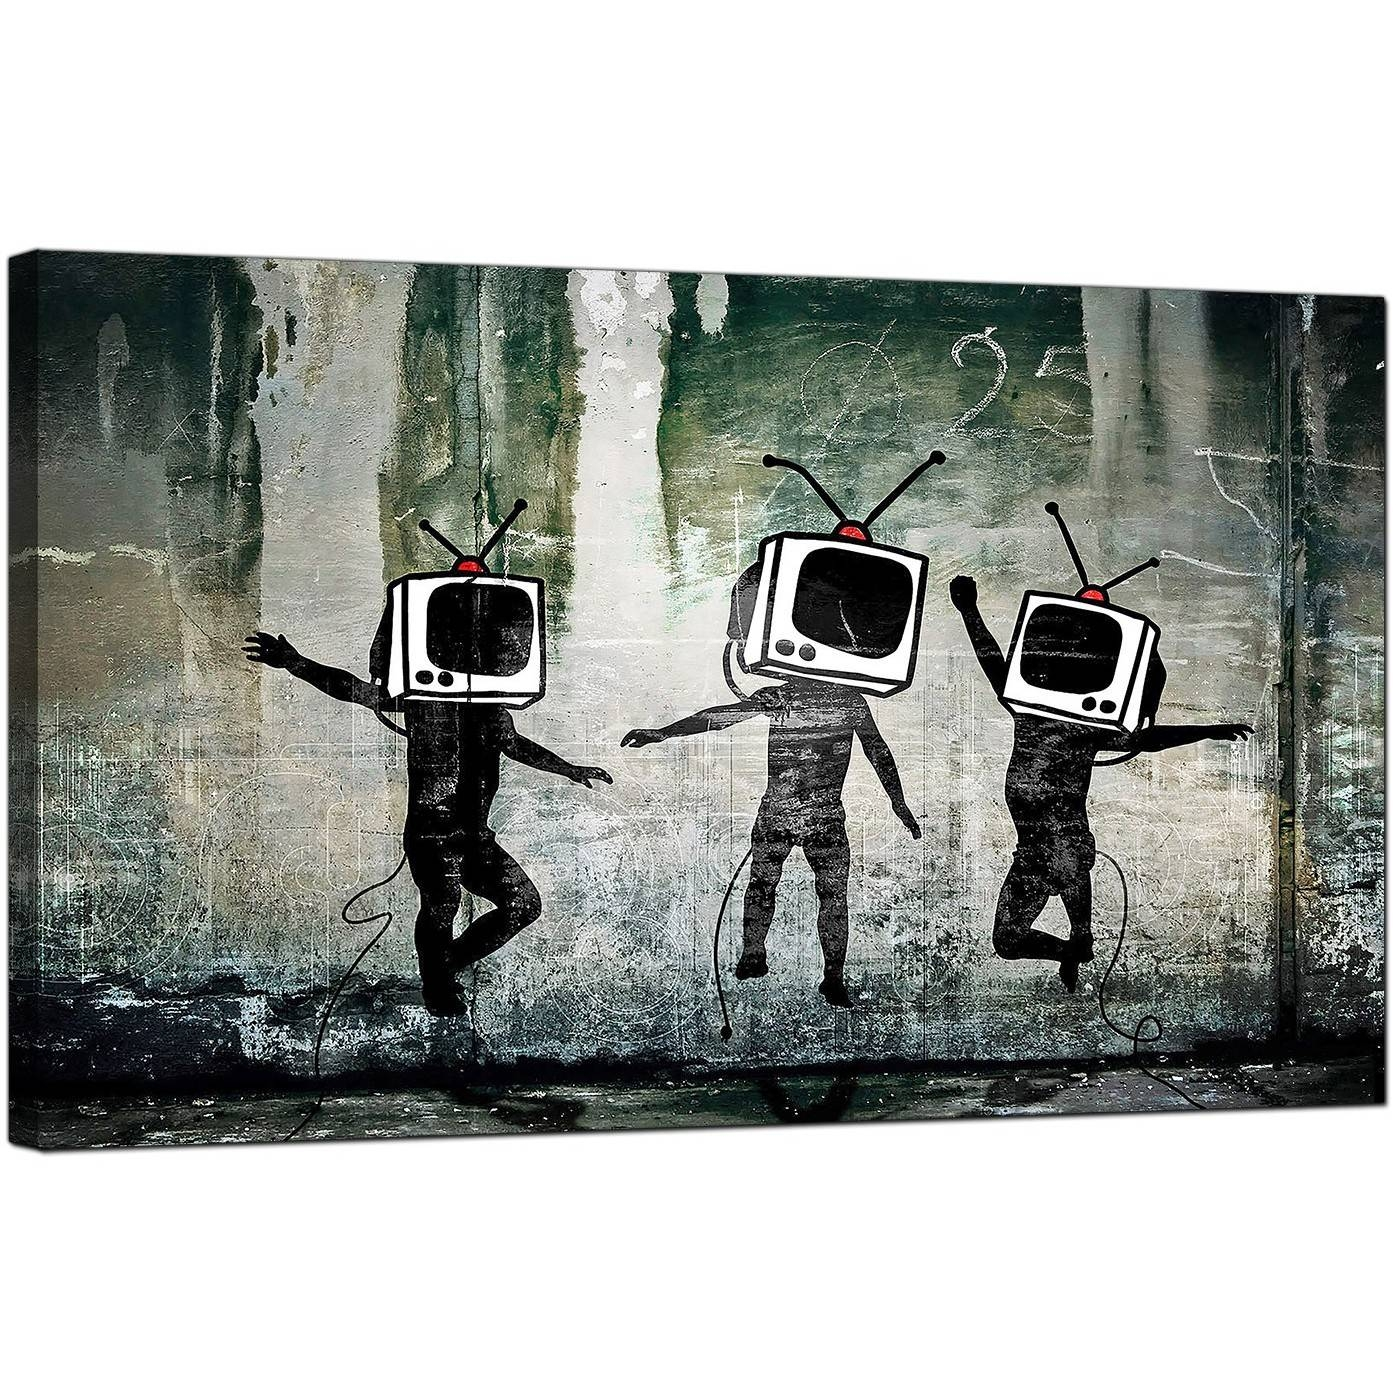 Banksy Canvas Wall Art – Wall Murals Ideas With Regard To Current Banksy Wall Art Canvas (View 11 of 20)